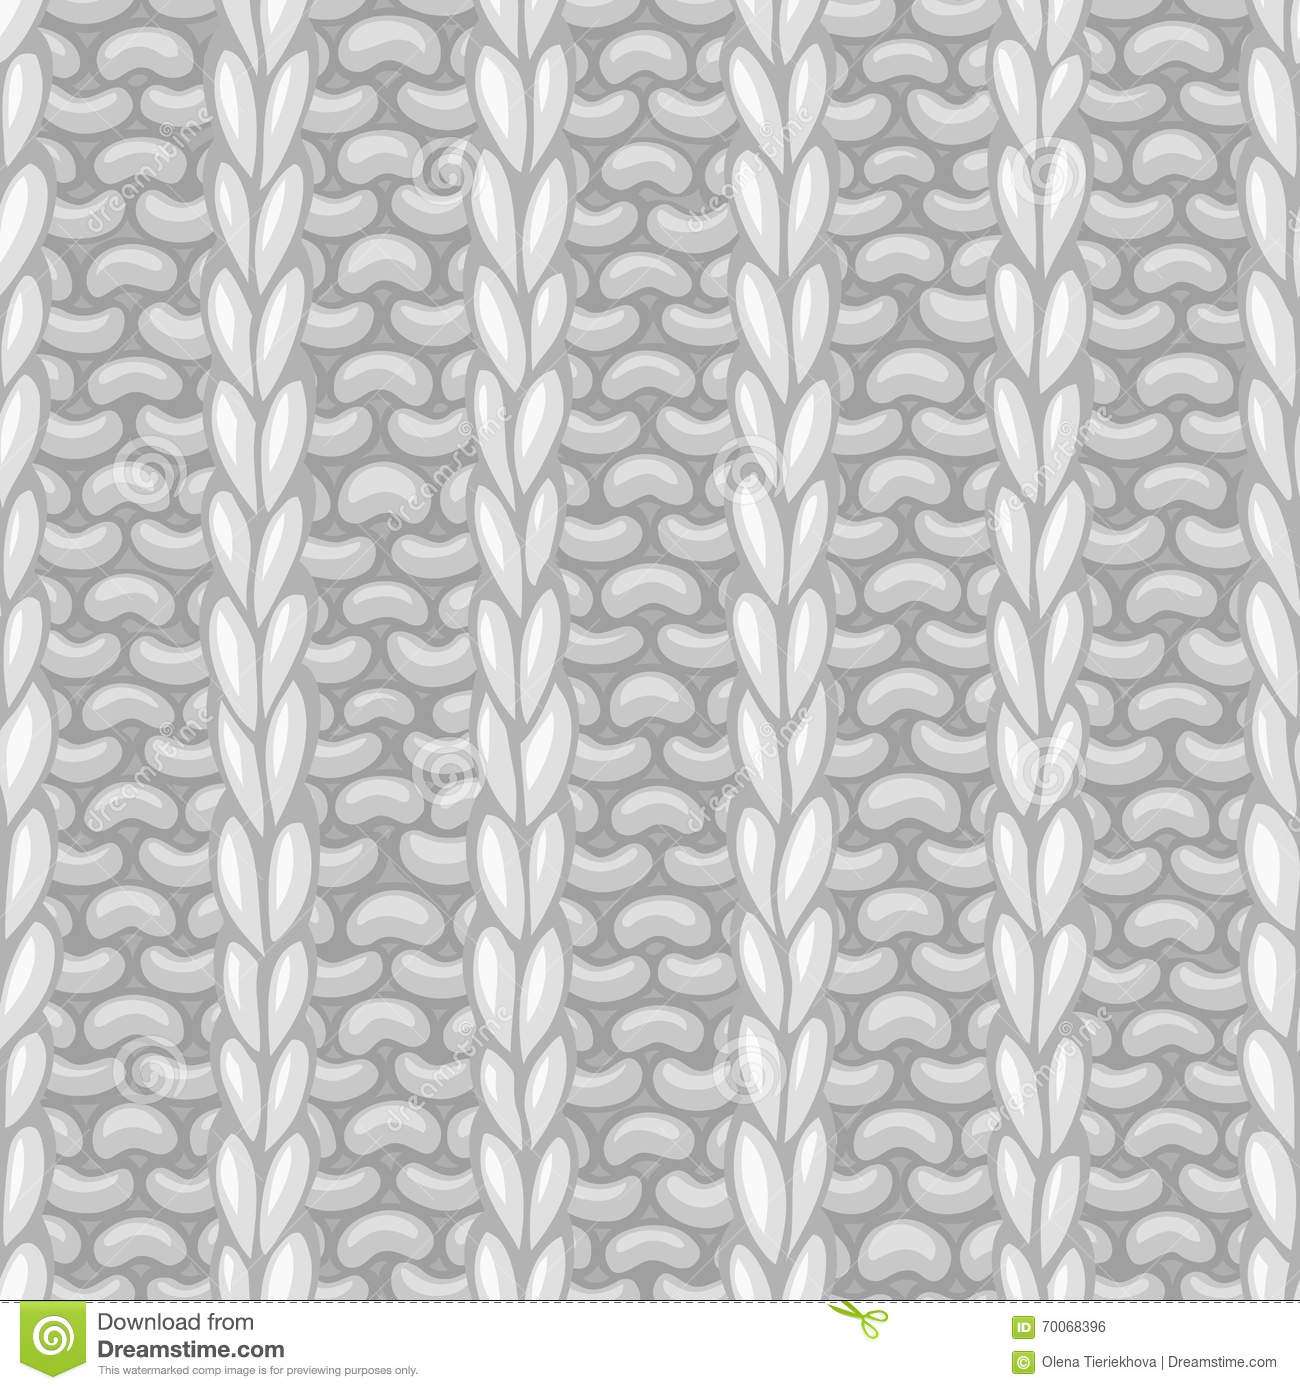 Vector seamless pattern in knitting style.